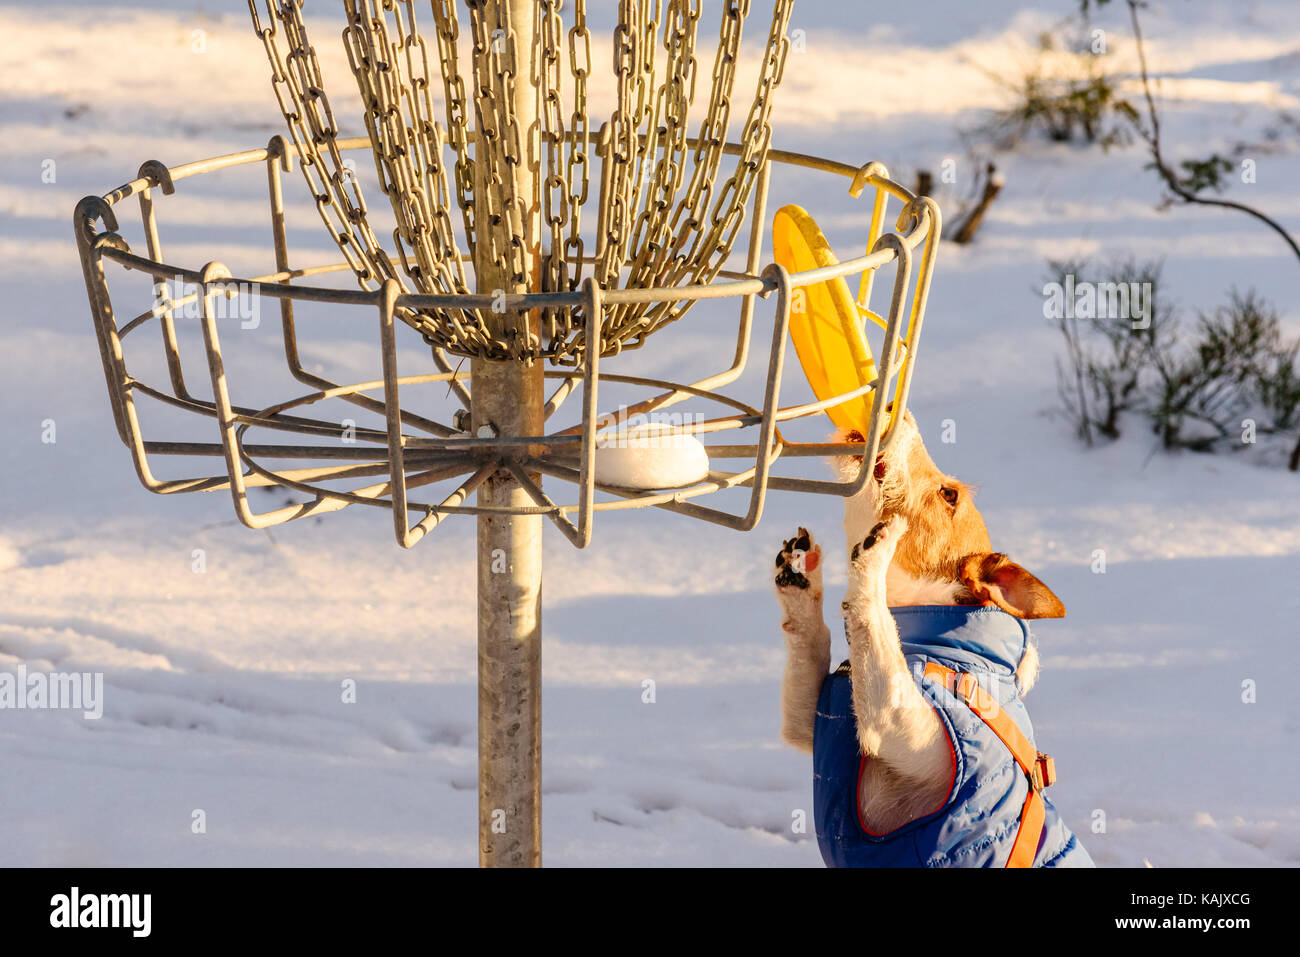 Stalemate tough situation at disc golf playground - Stock Image